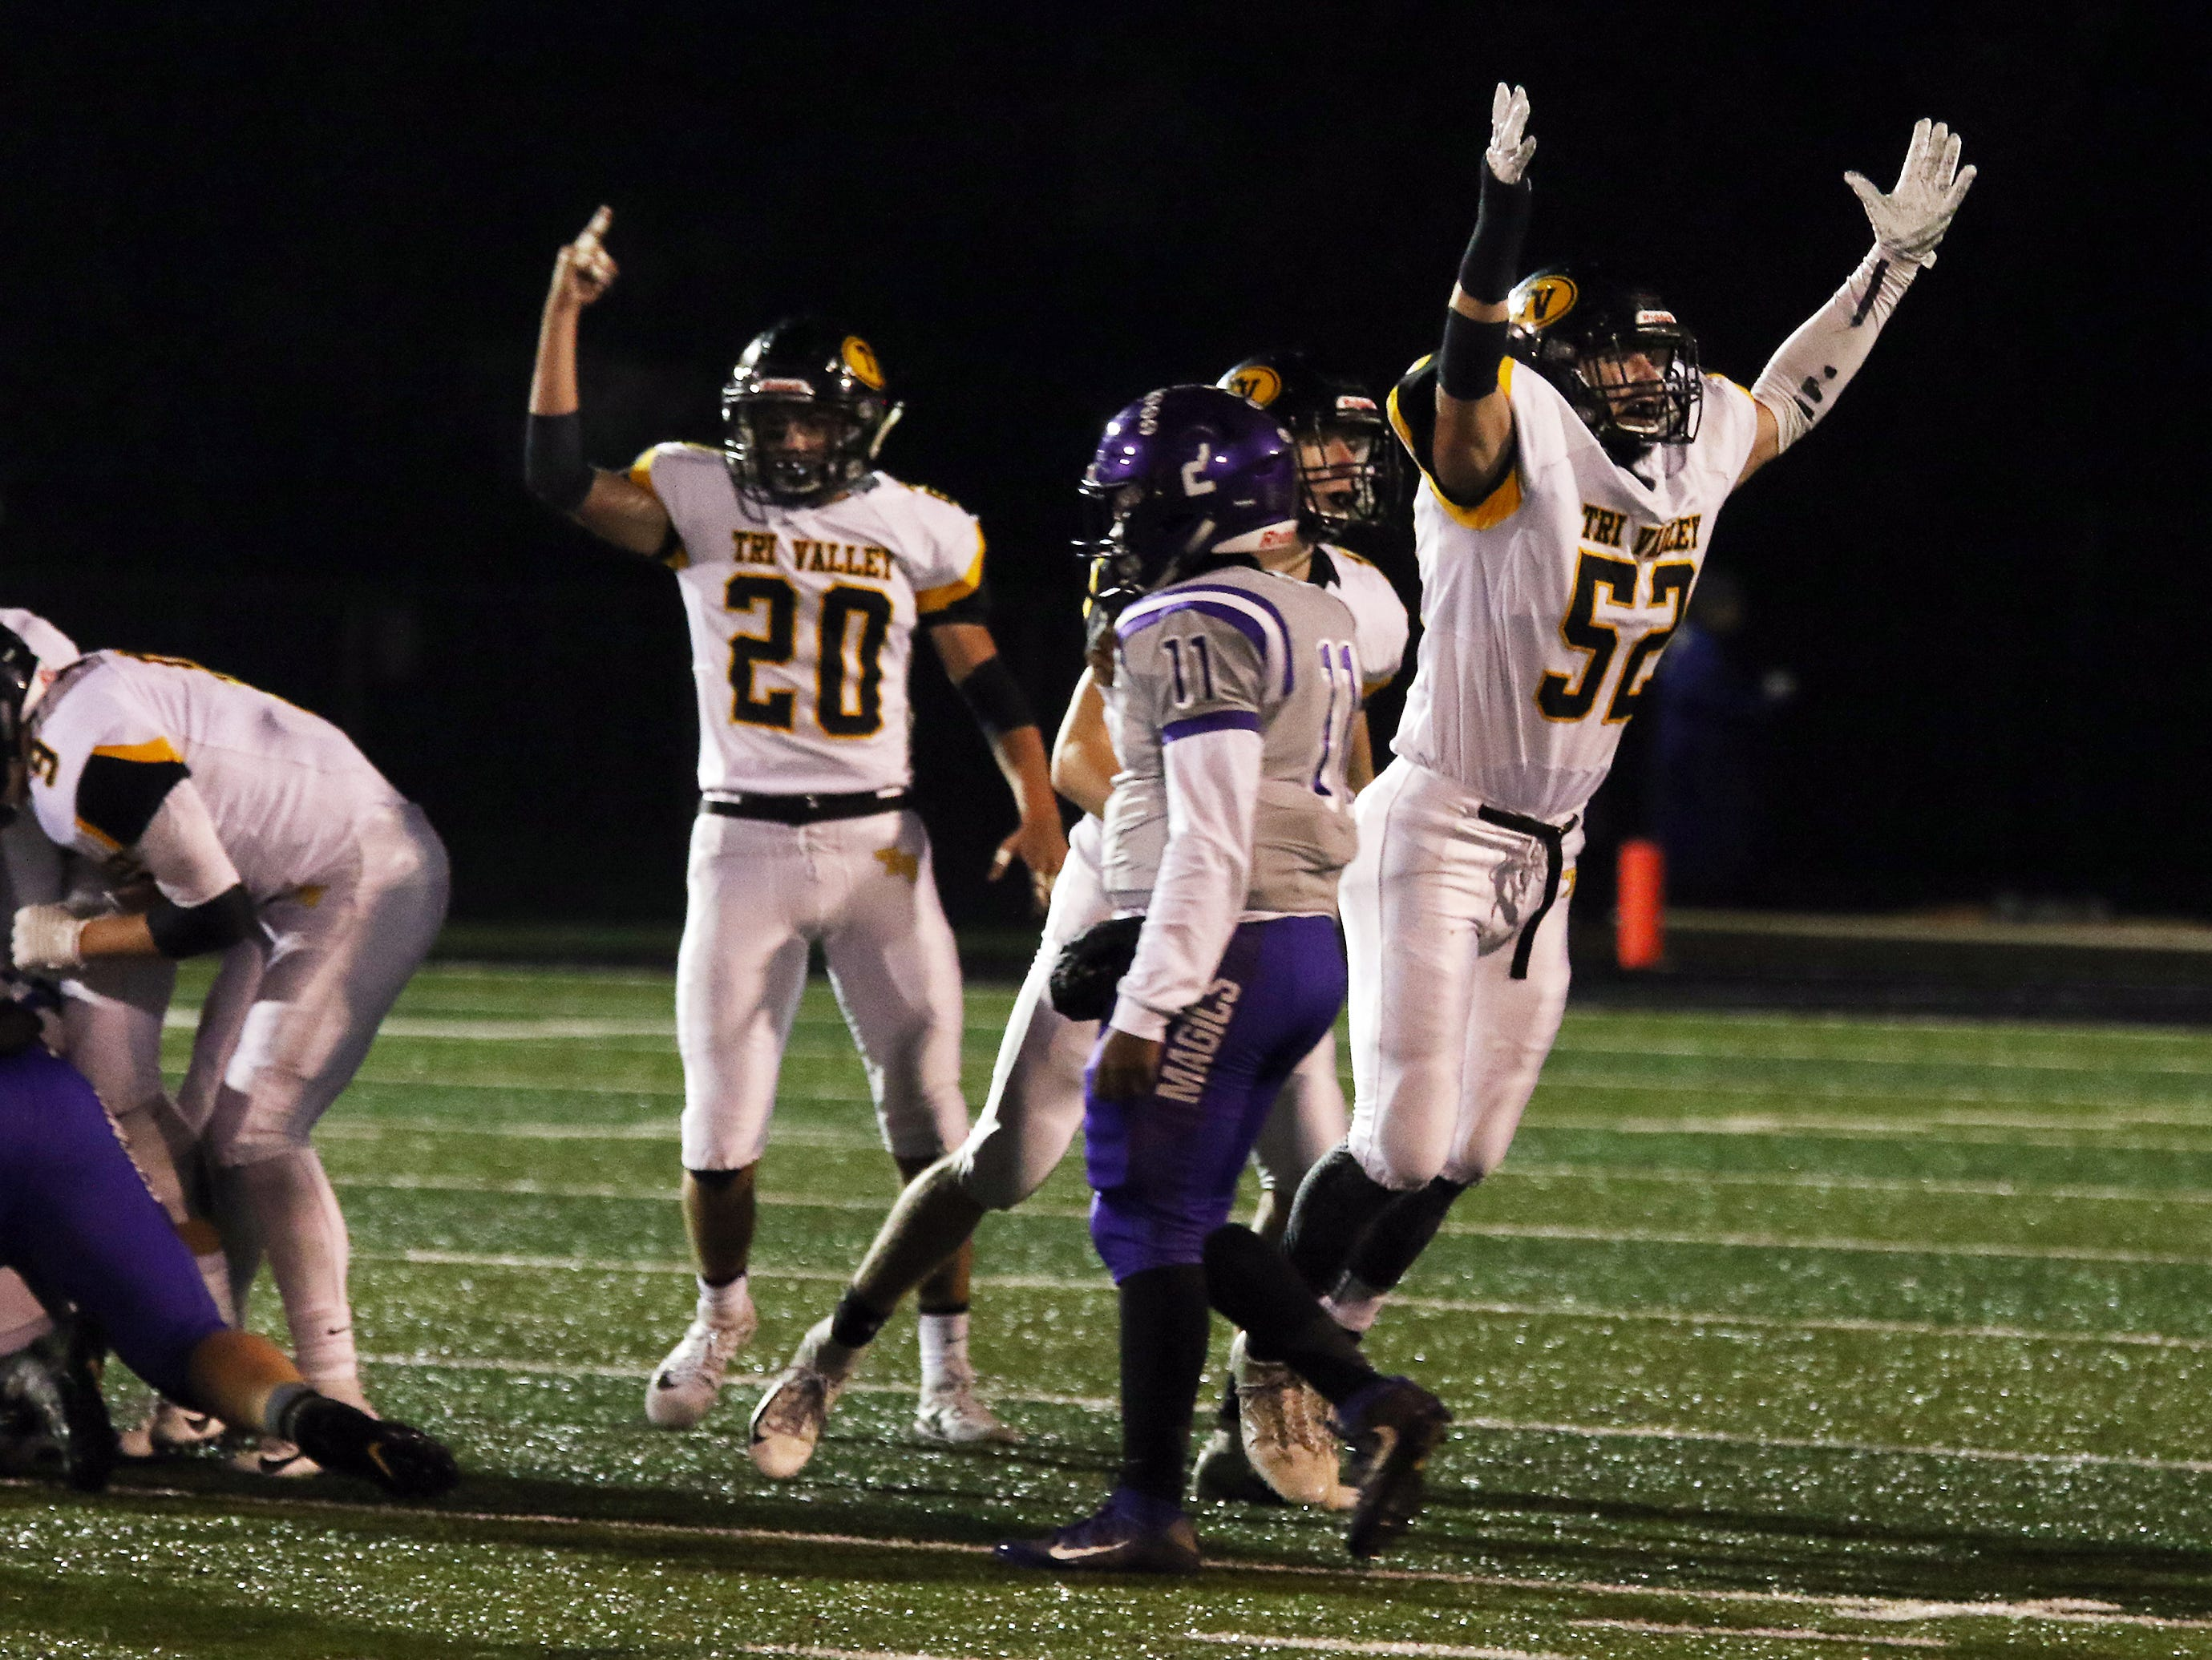 Tri-Valley's Tom Reiss celebrates a Barberton fumble recovery.